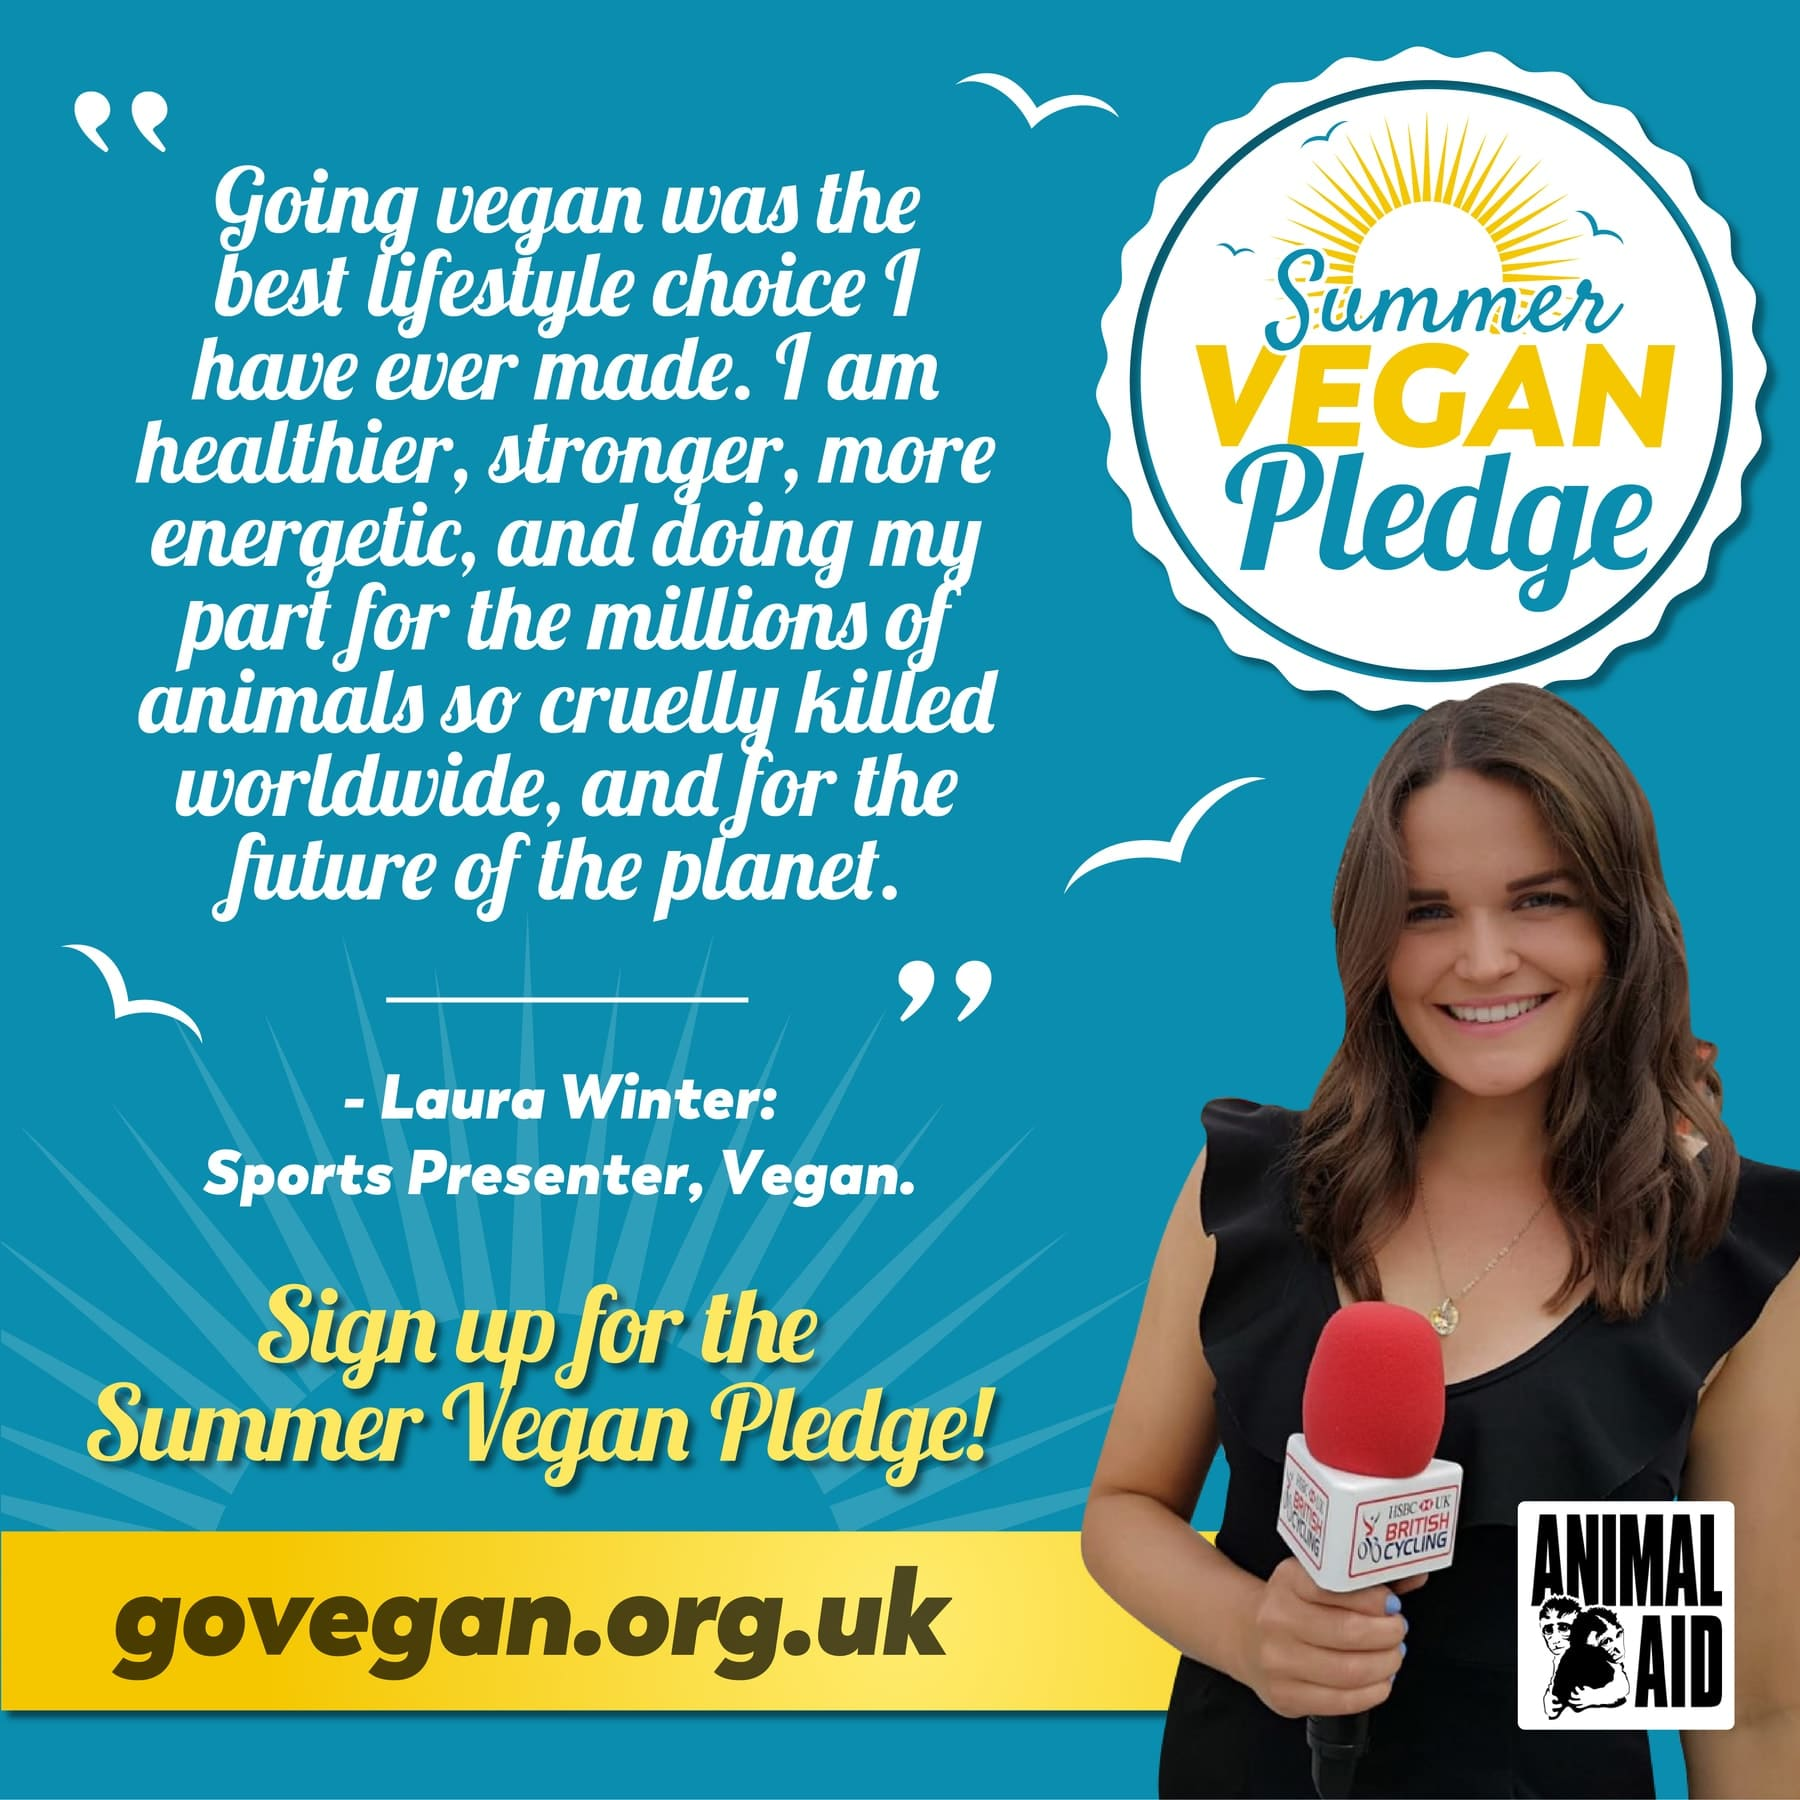 Celebrities urge people to go vegan this coming summer 3